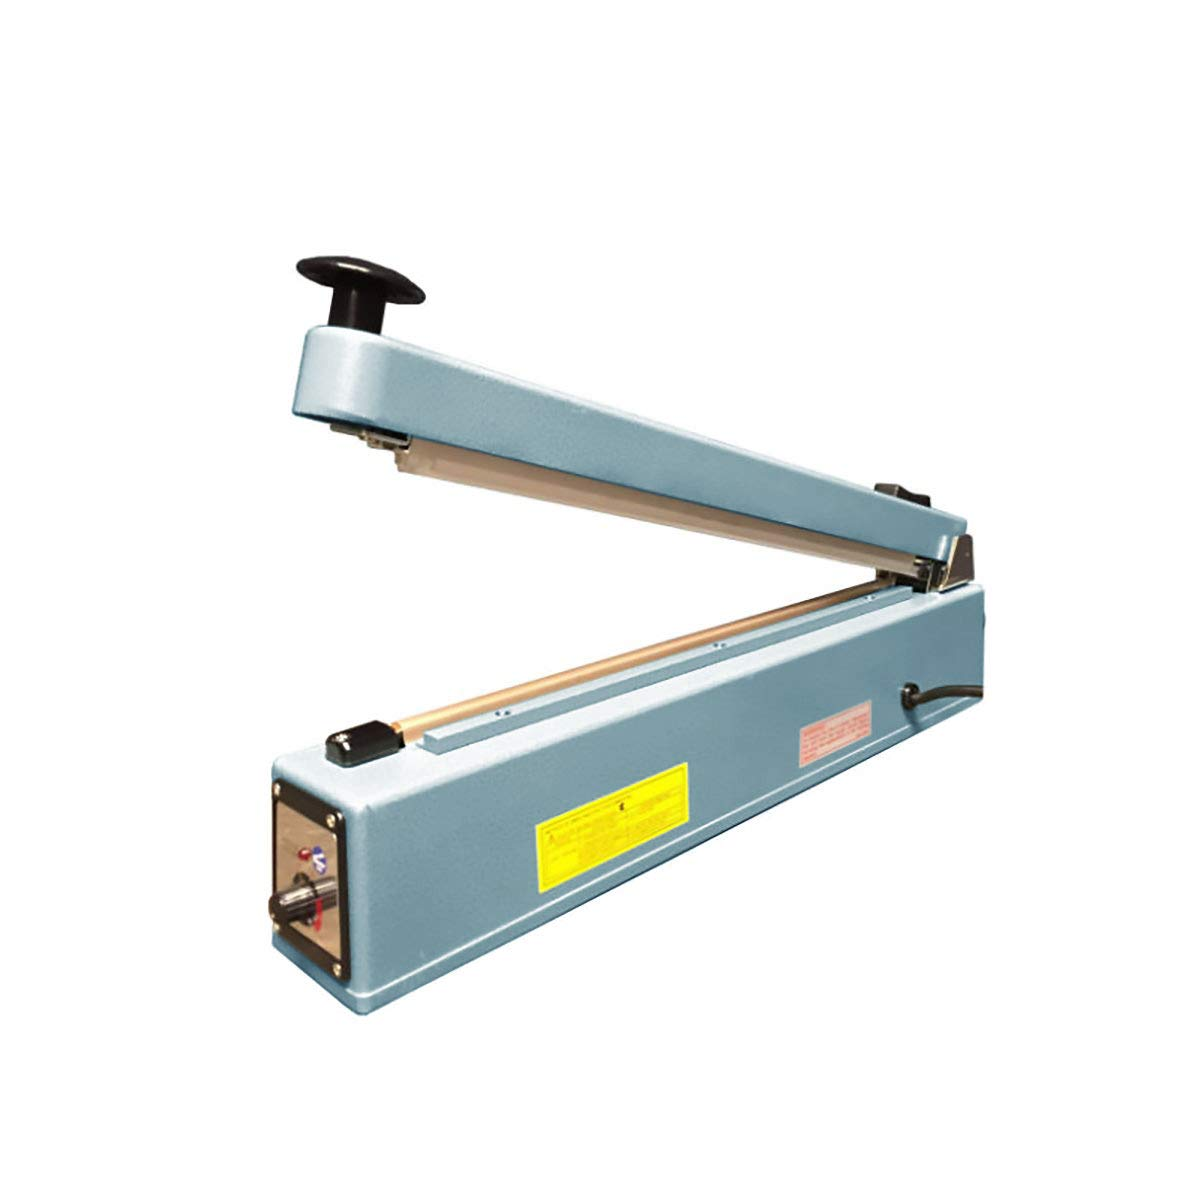 UltraSource Impulse Manual Hand Sealer with Cutter, 16